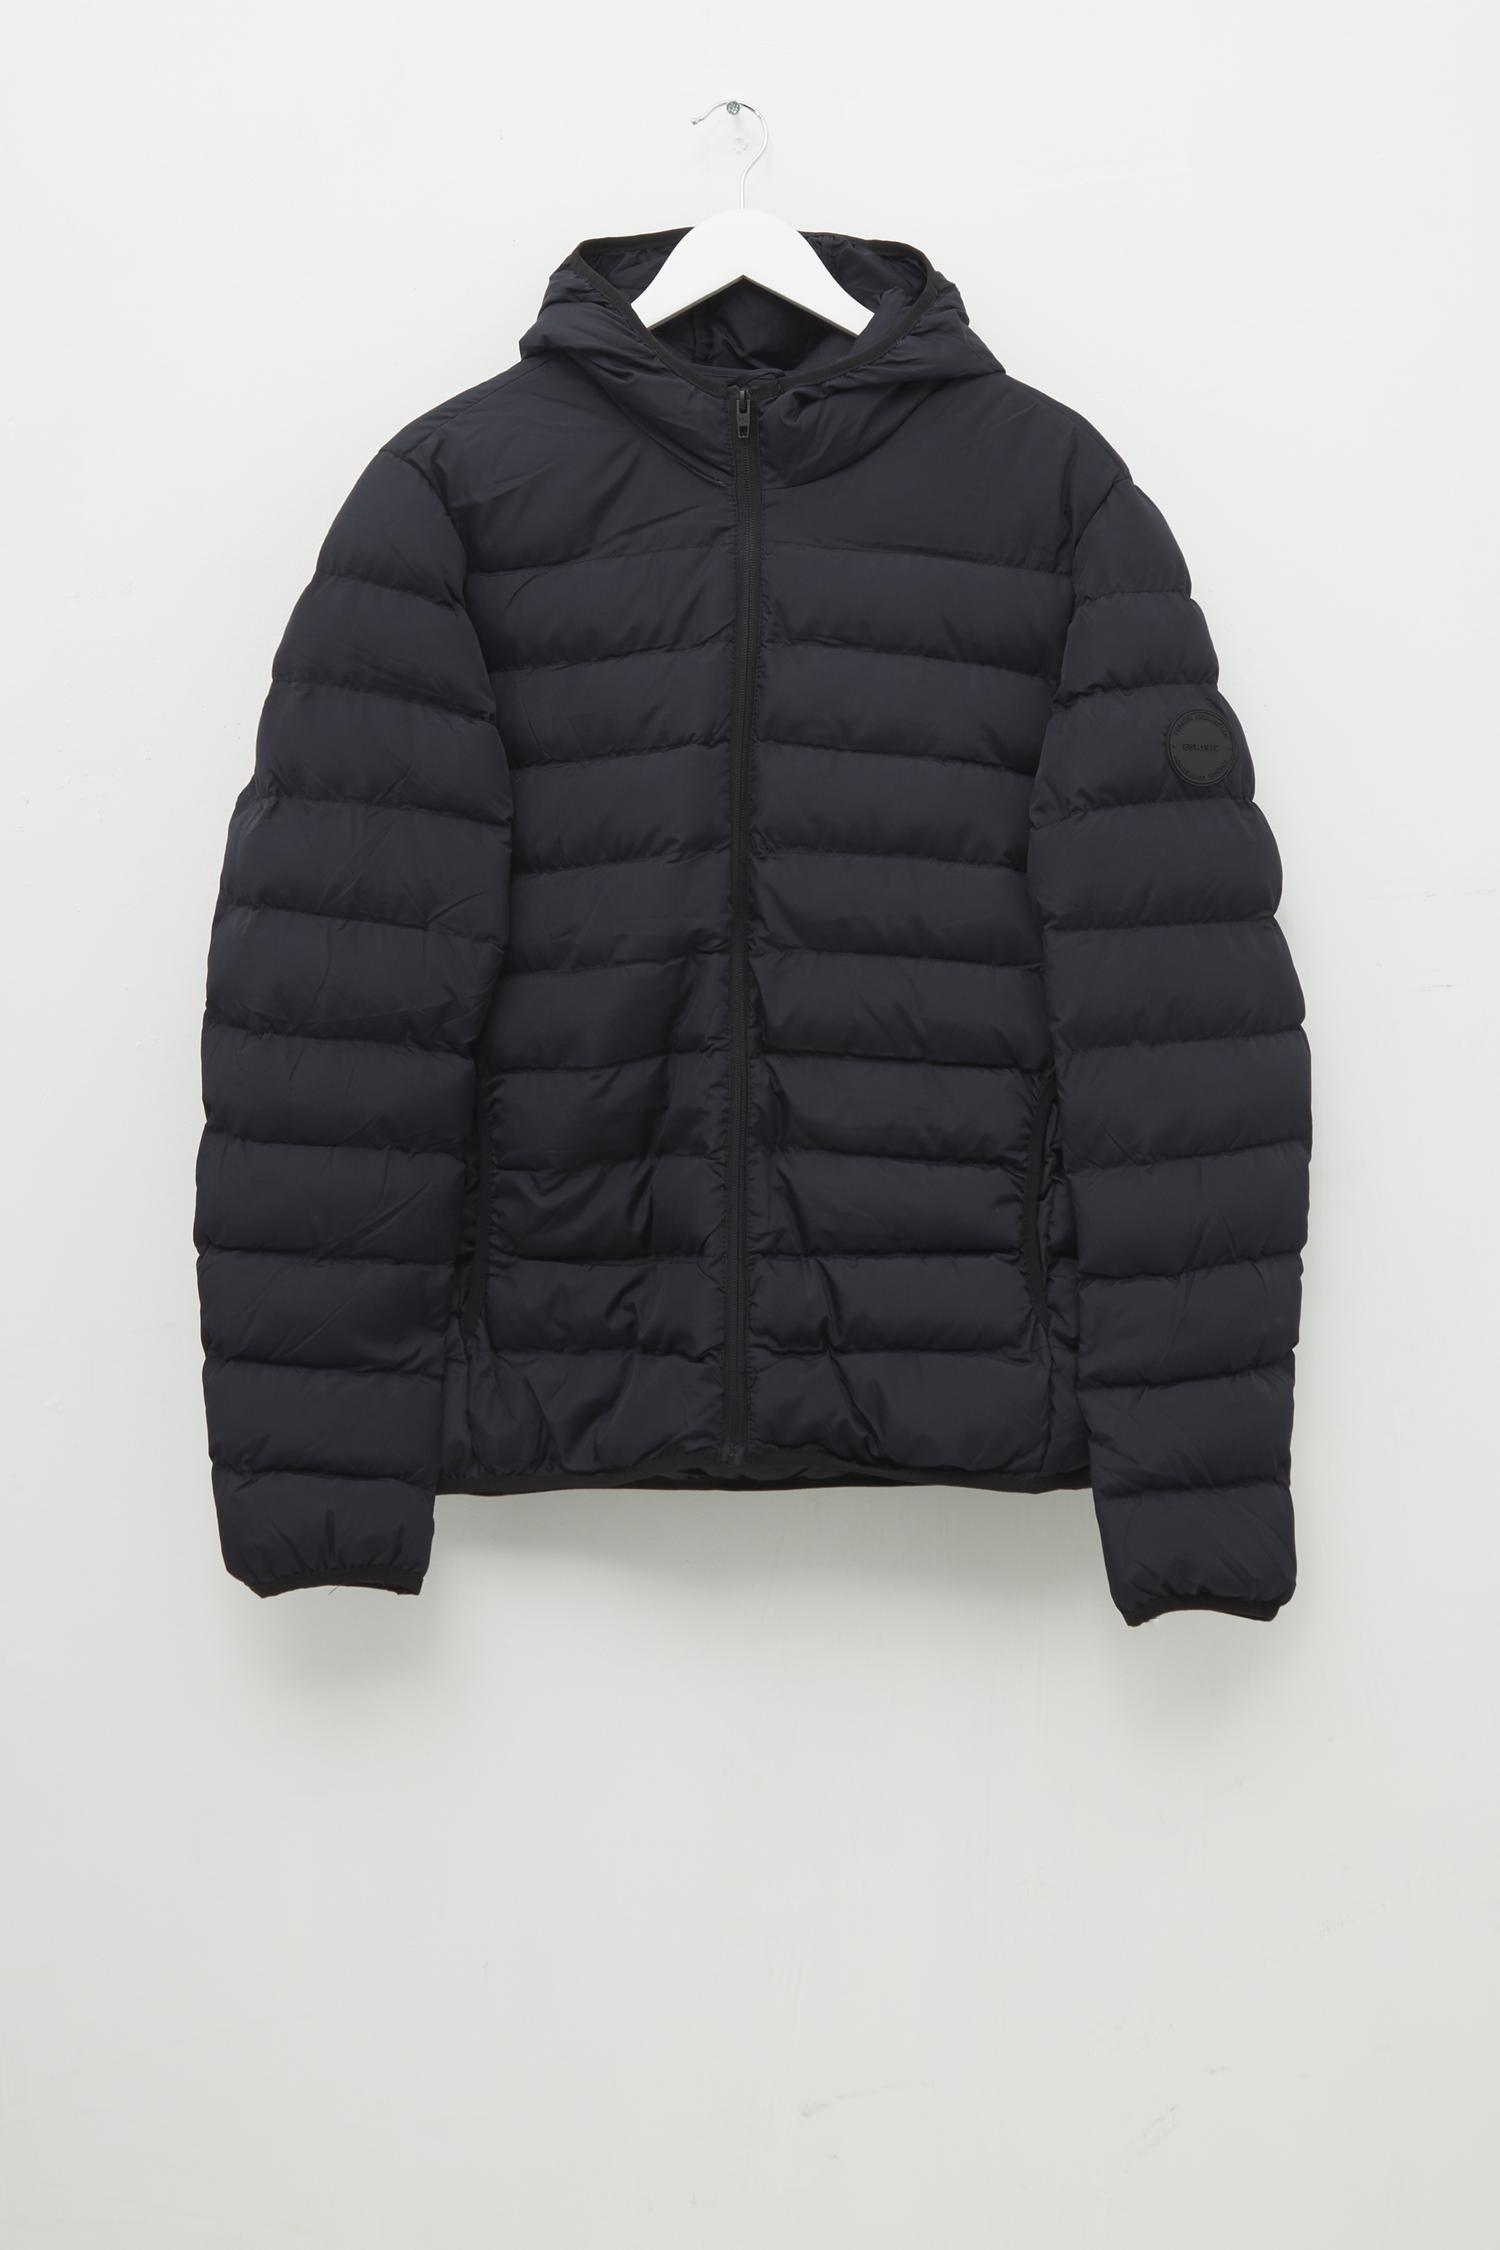 c80424f85fa French Connection Row 2 Puffa Jacket for Men - Lyst